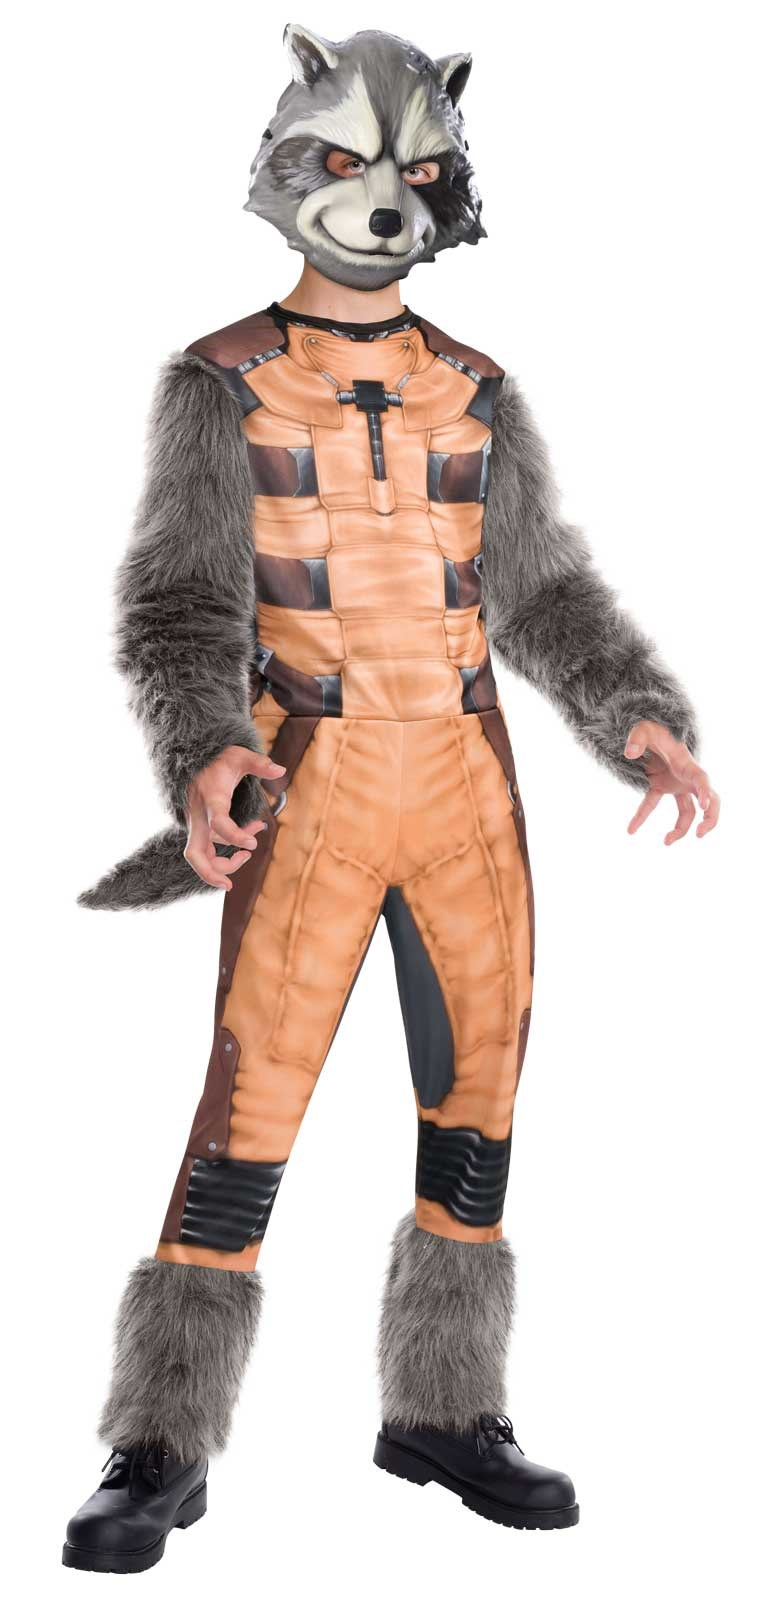 Guardians of the Galaxy - Deluxe Rocket Raccoon Child Costume Large (12-14)